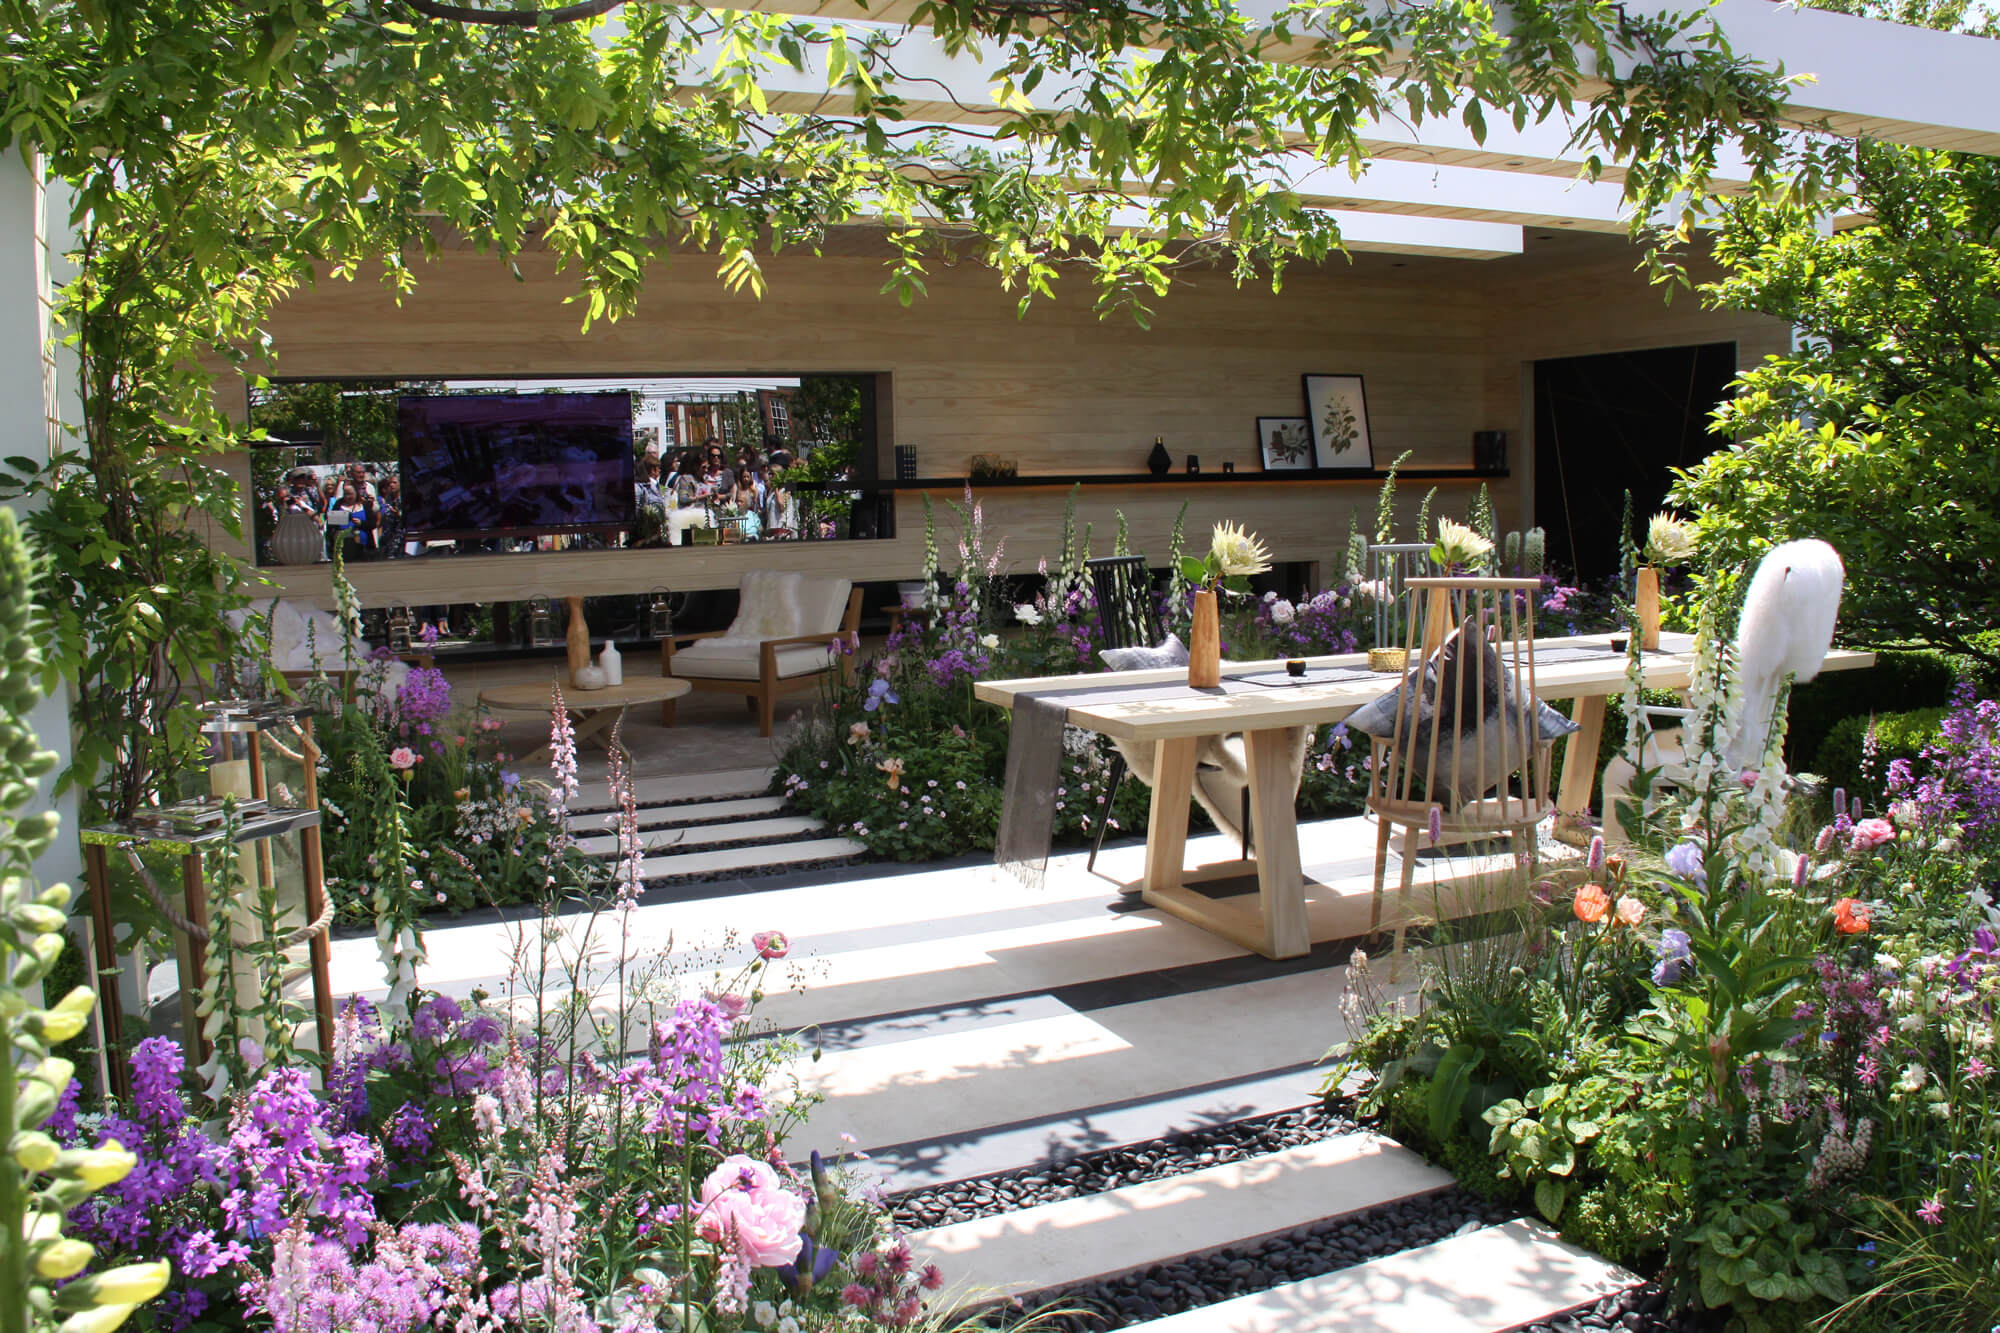 Garten inspiration an der chelsea flower show london for Vorgarten inspirationen